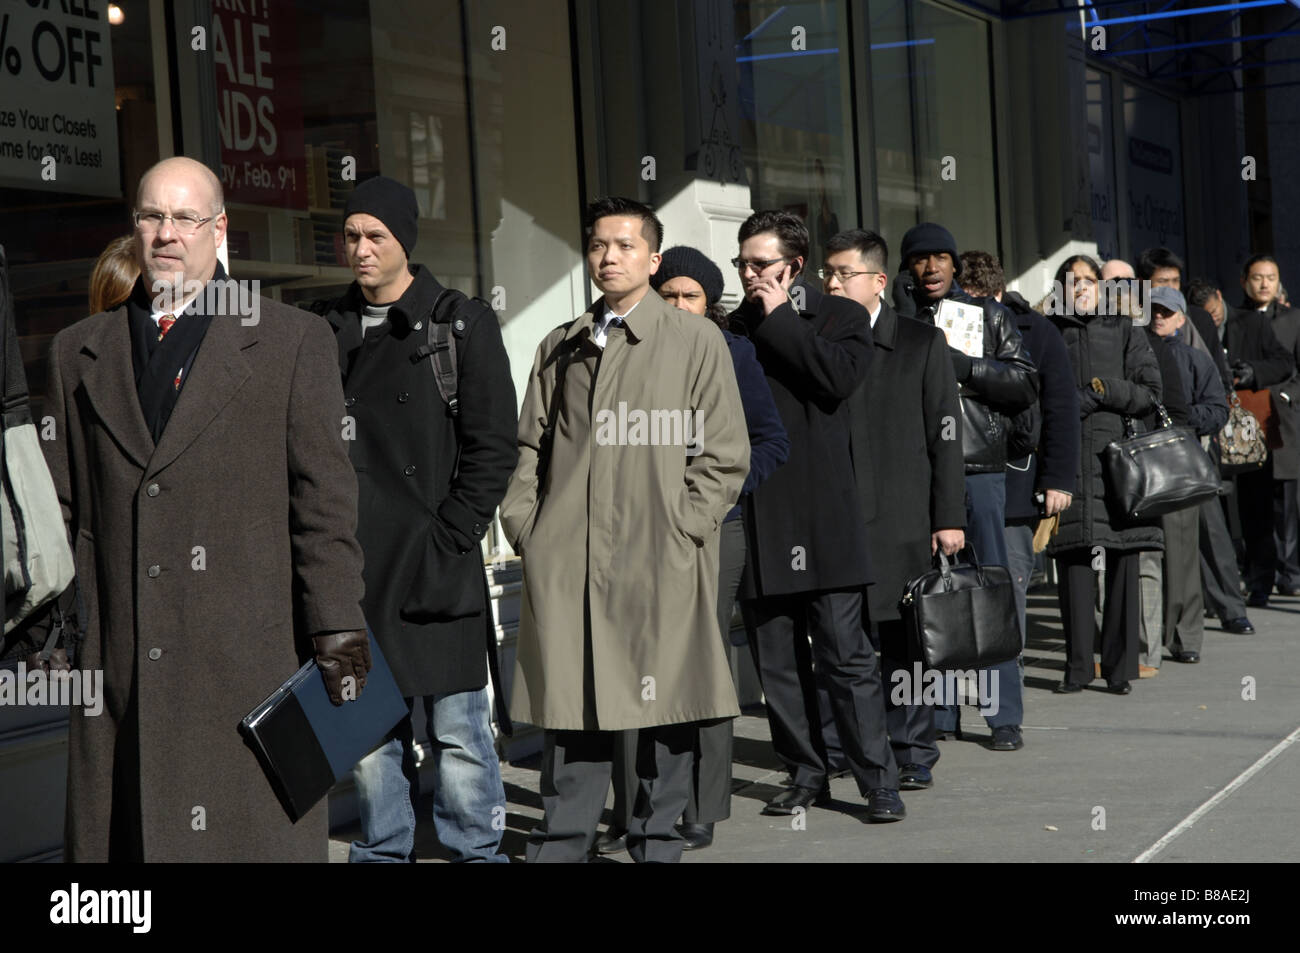 Hundreds Of People Line Up In New York For A Job Fair Sponsored By The  Website